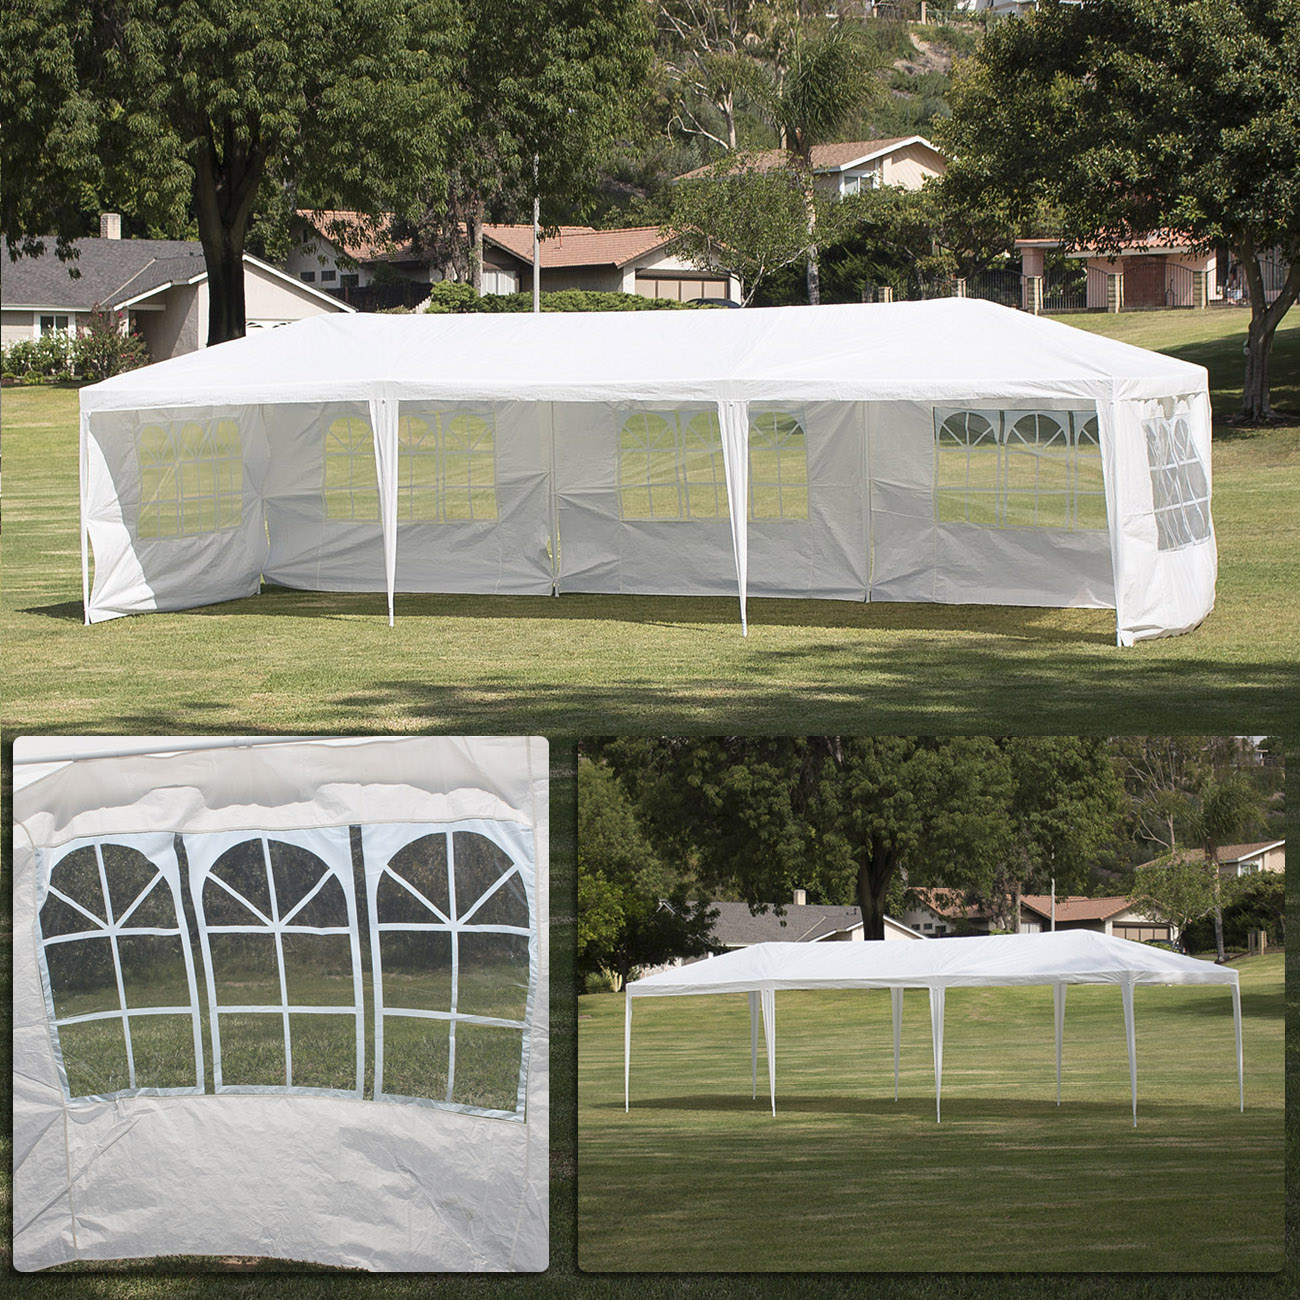 BELLEZE Large Heavy Duty 10' x 30' Foot White Wedding Canopy Event Dancing Gazebo Removable Side Walls Outdoors